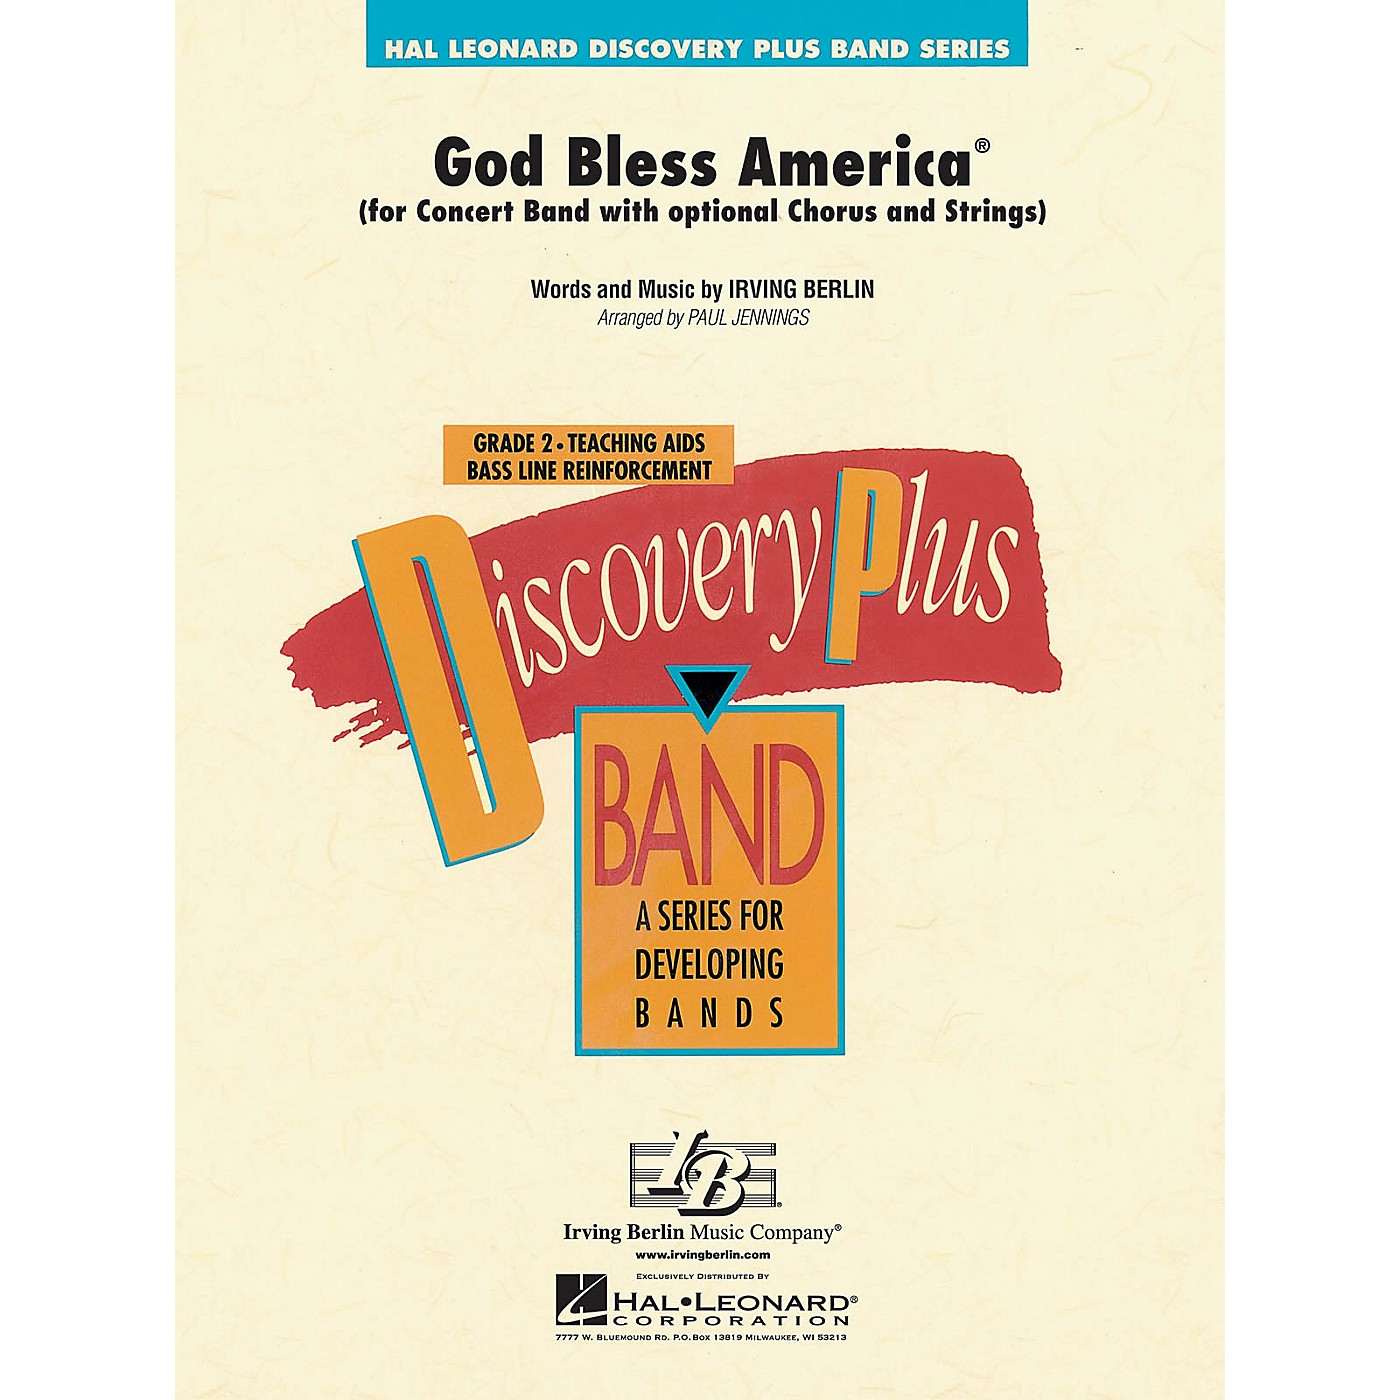 Hal Leonard God Bless America® - Discovery Plus Concert Band Series Level 2 arranged by Paul Jennings thumbnail